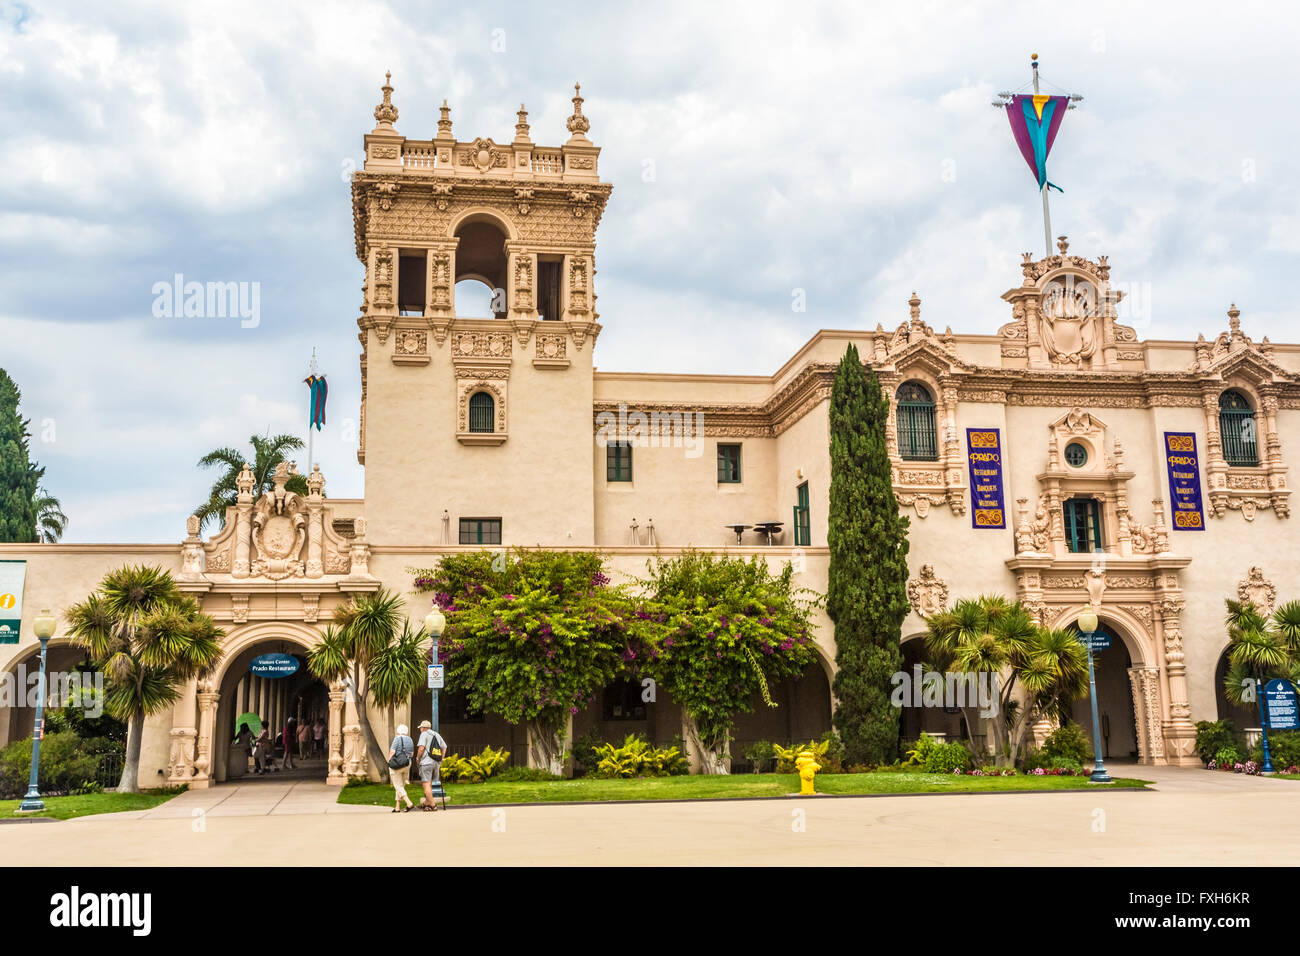 spanish style architecture buildings in balboa park san diego Stock